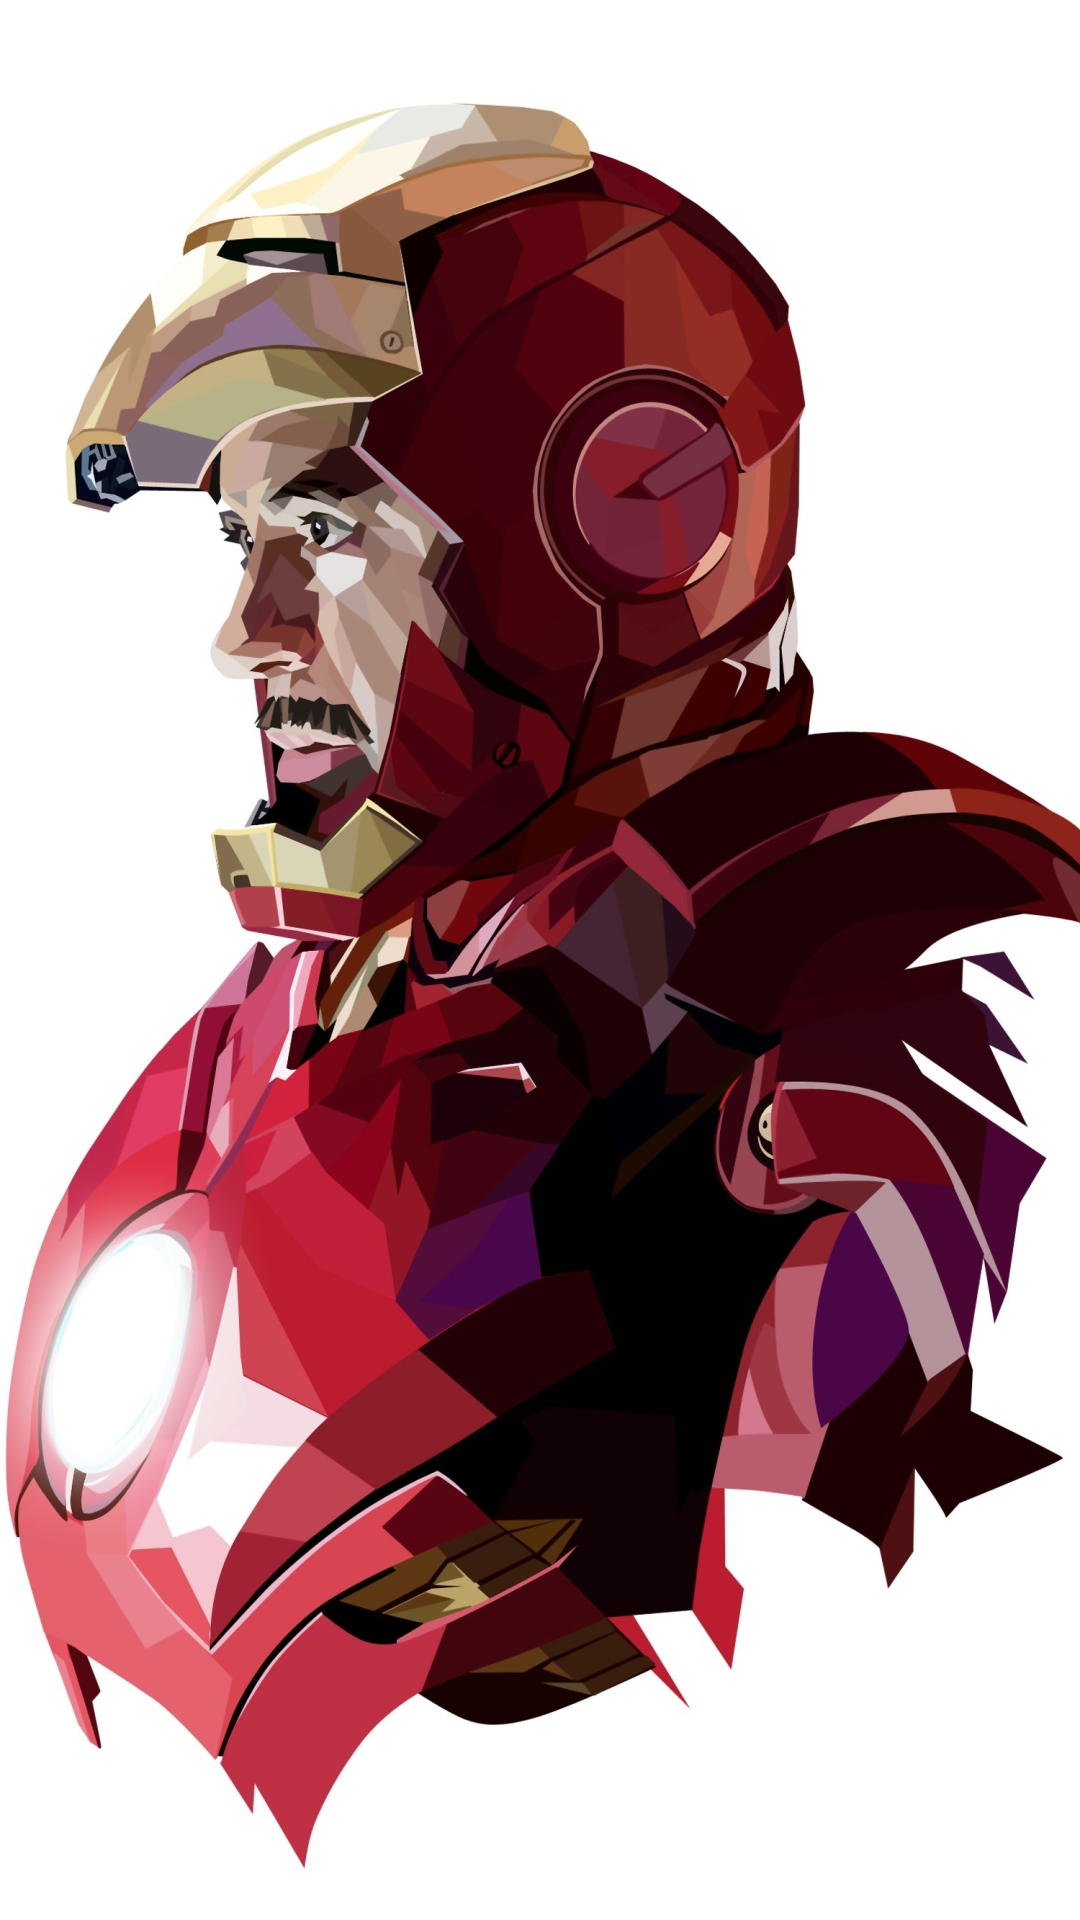 movie/iron man 3 (1080x1920) wallpaper id: 624444 - mobile abyss